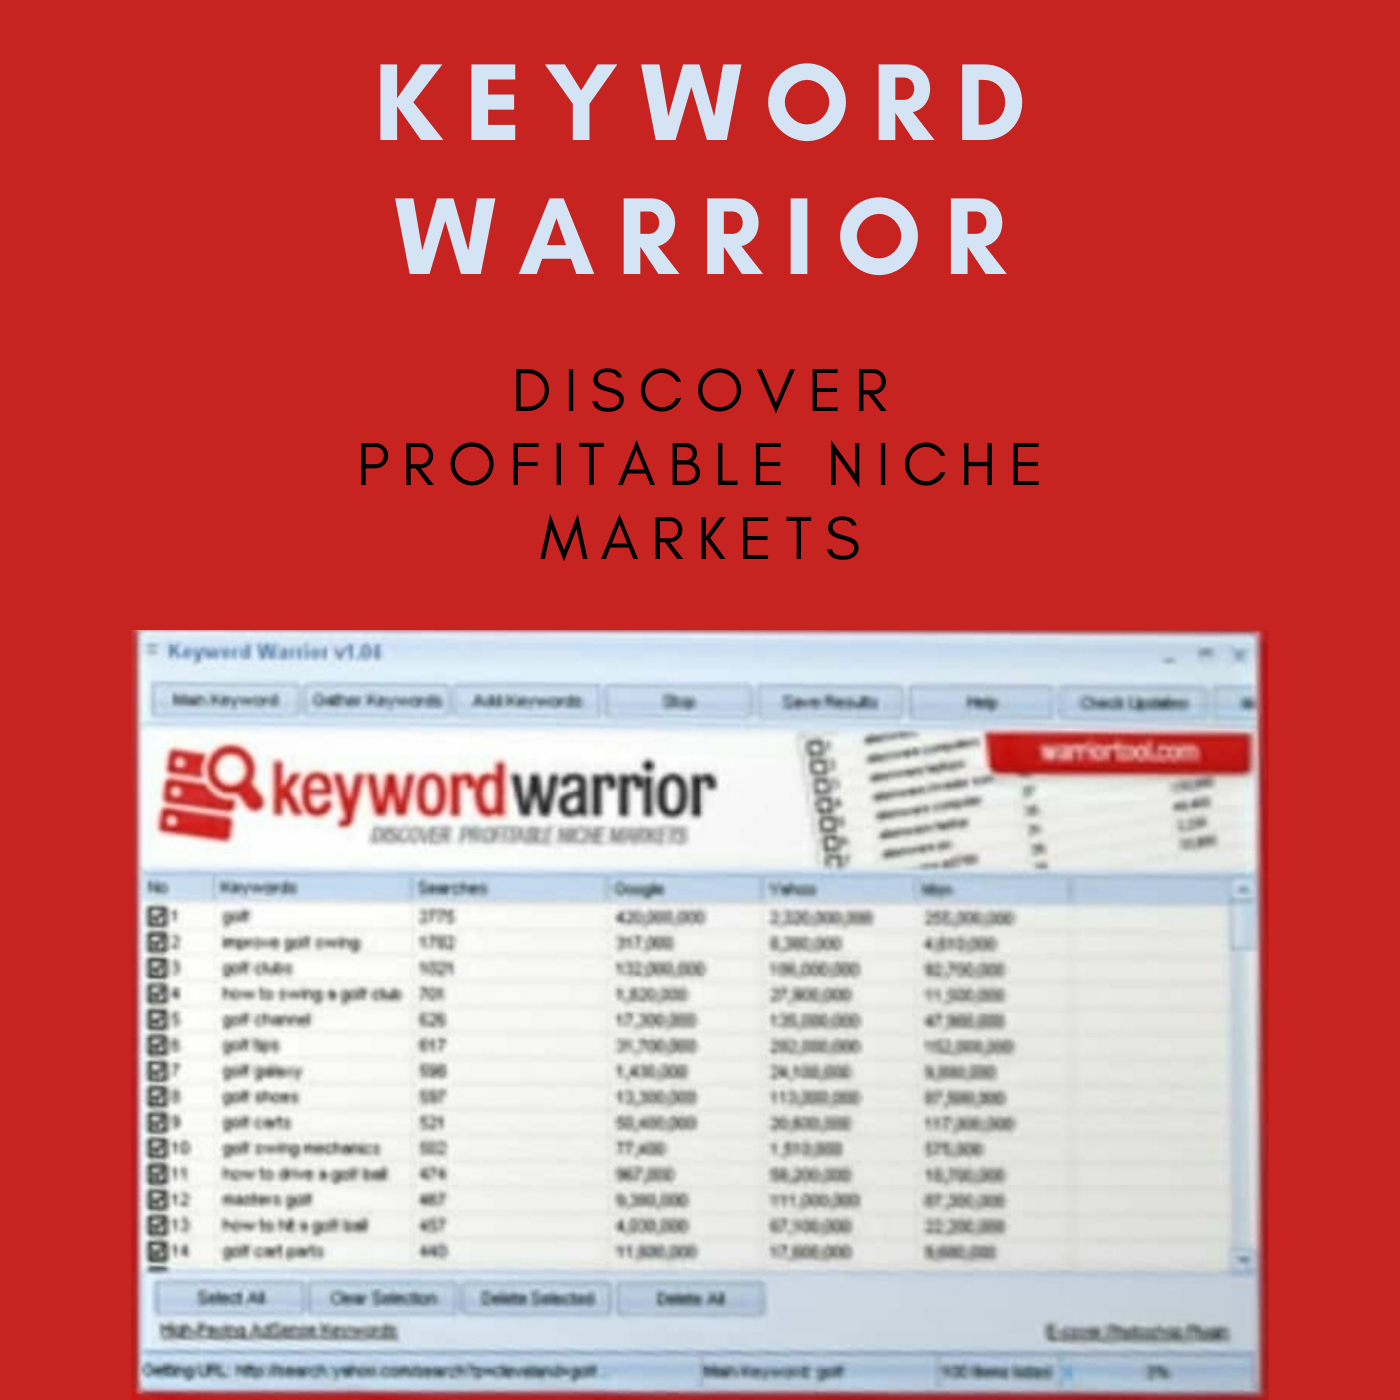 Keyword Warrior for discovering Profitable Niche Markets